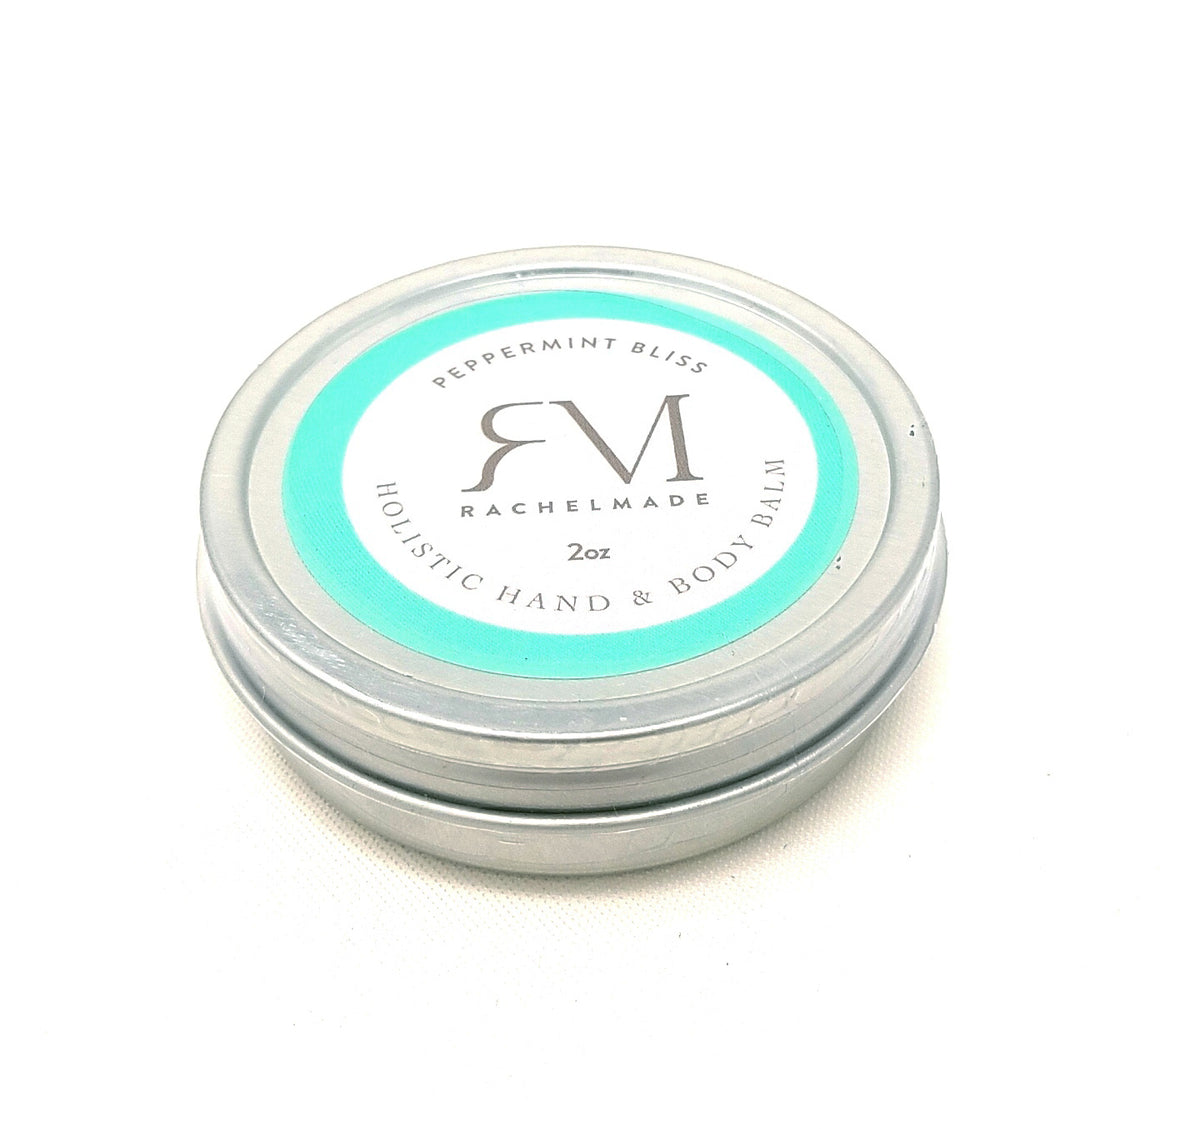 Peppermint Bliss Holistic Hand & Body Balm